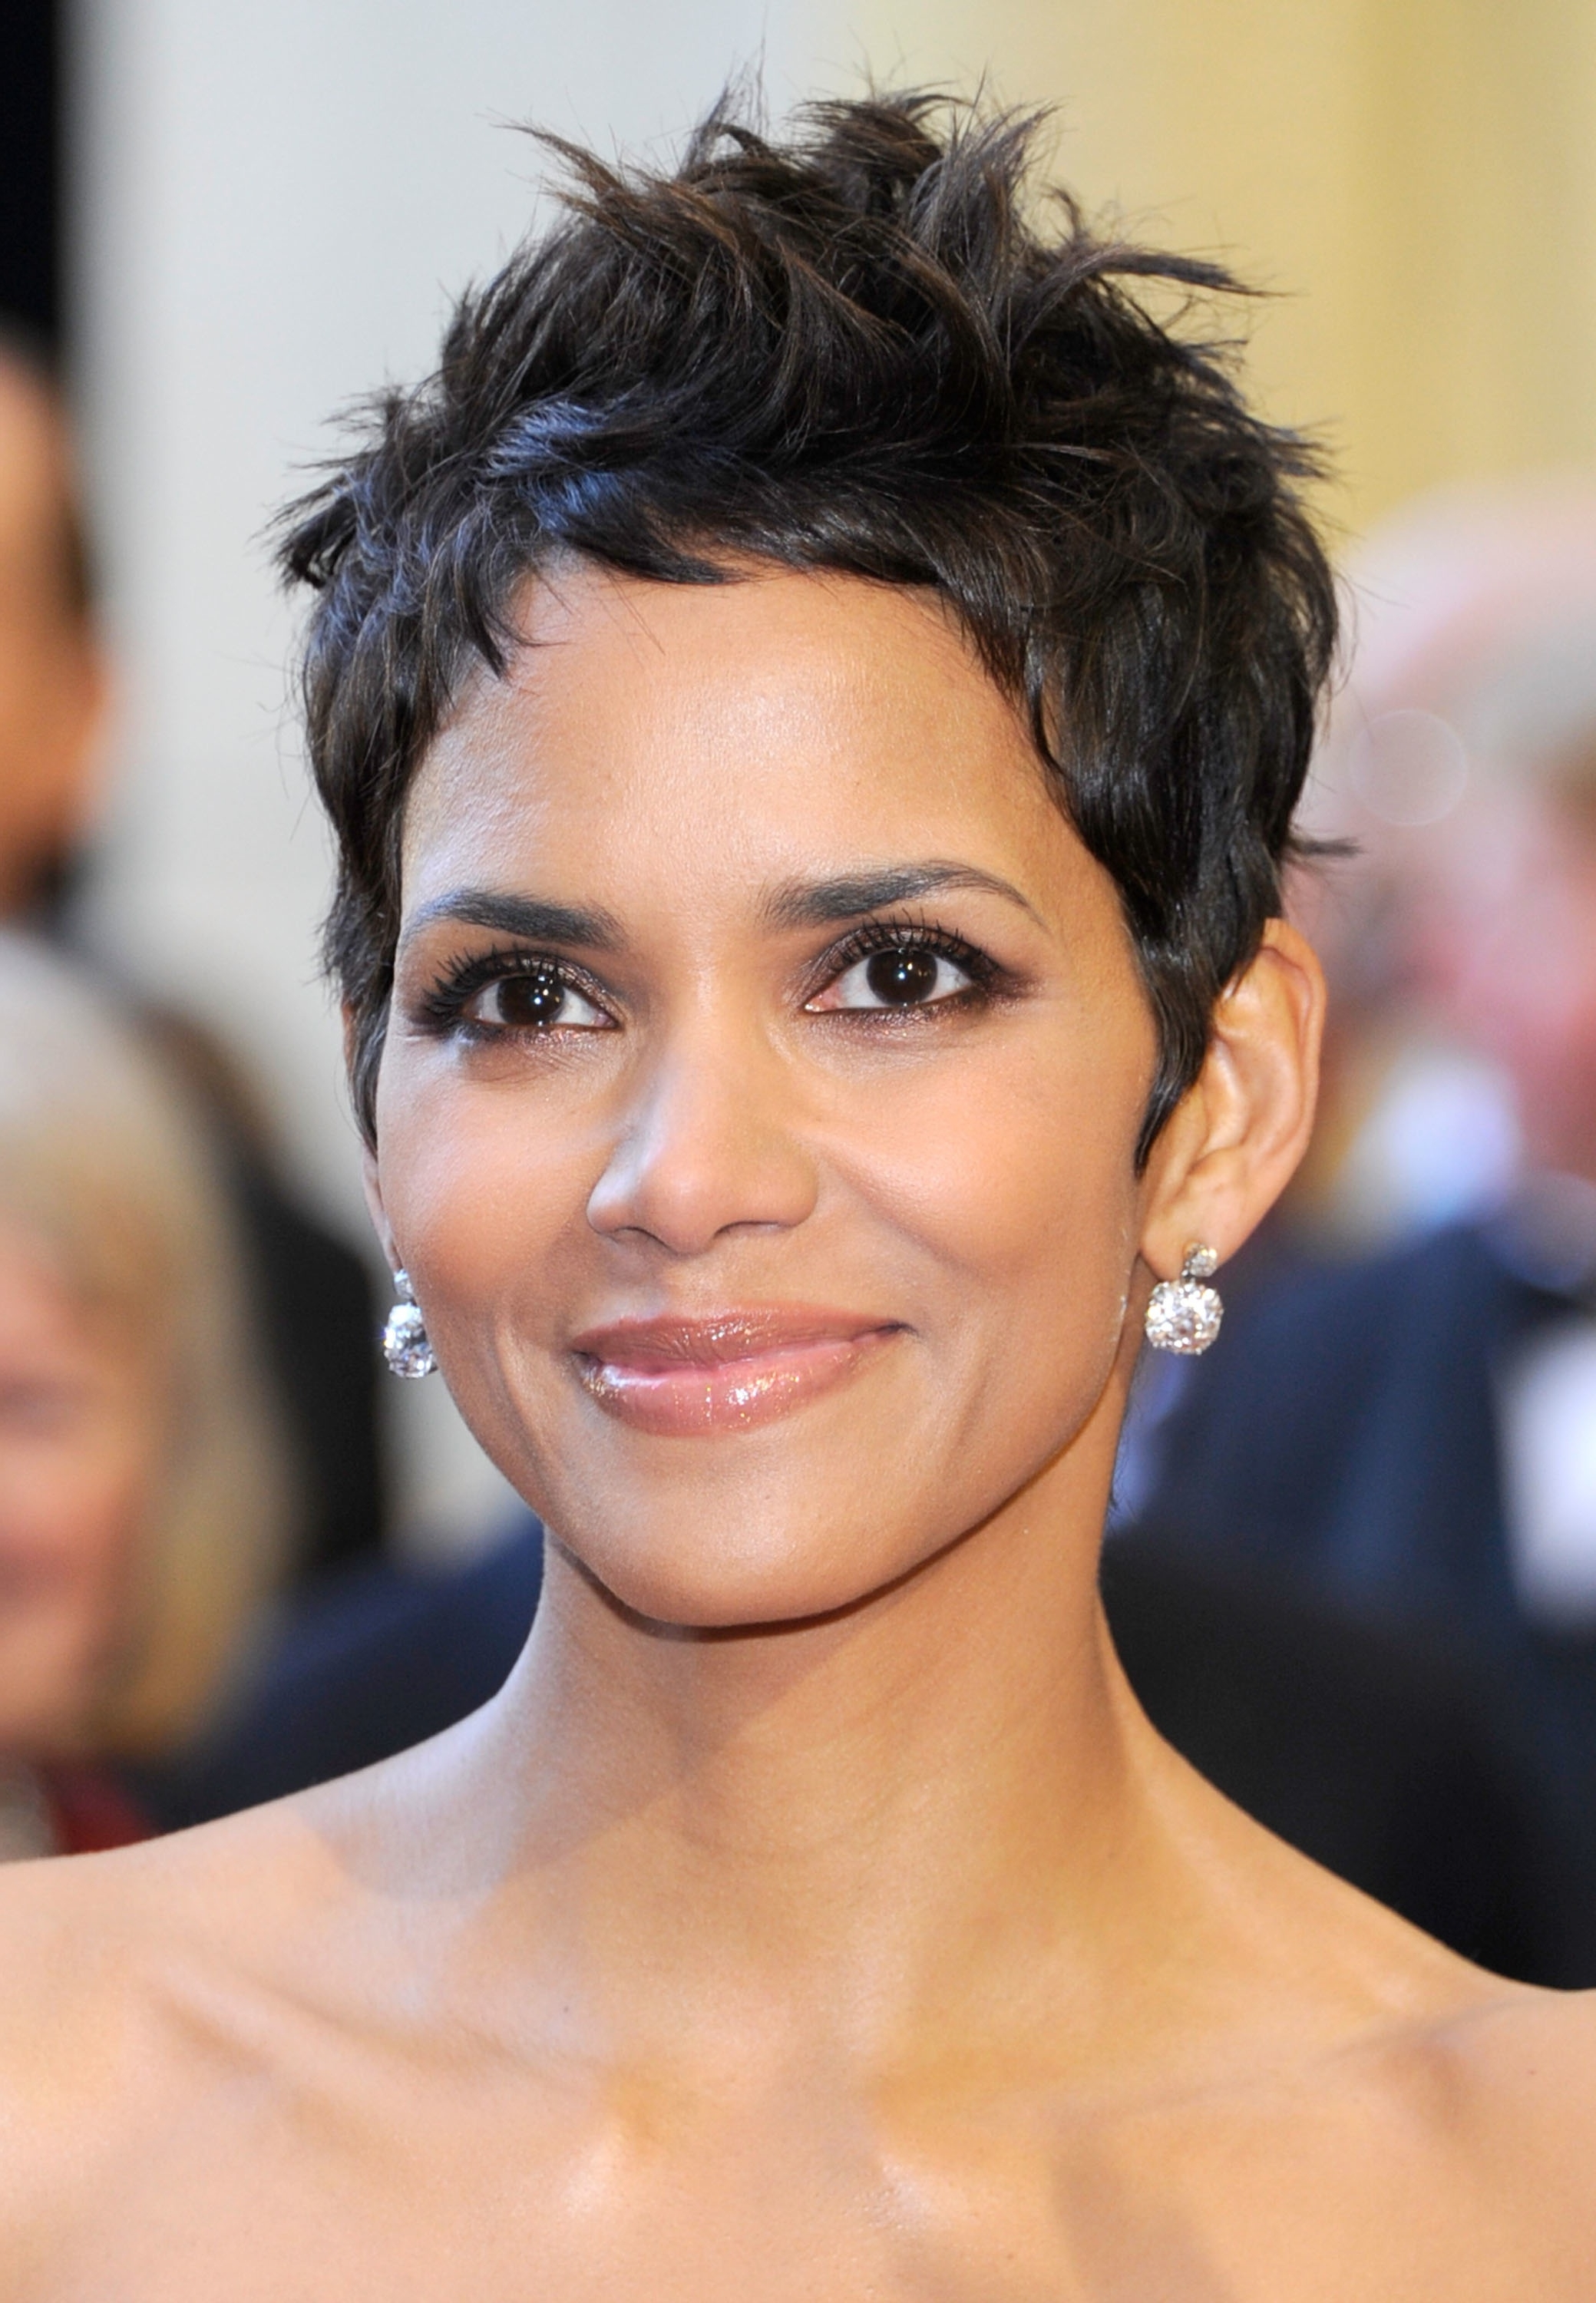 Halle Berry to present at the Oscars - INFORMATION NIGERIA Halle Berry